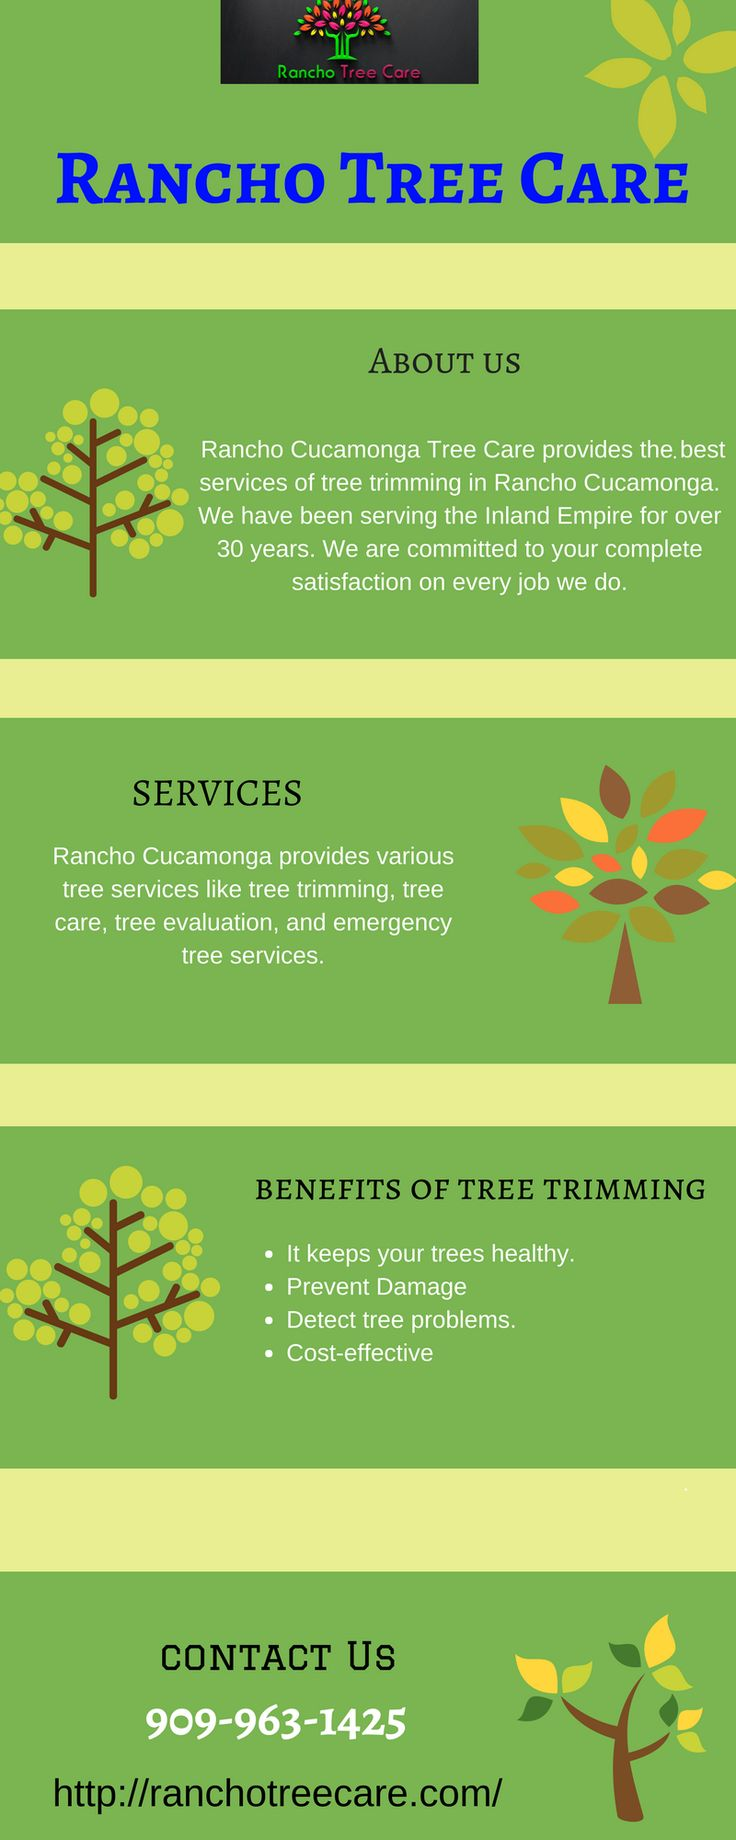 Get ensure emergency tree services with the Rancho tree care. We are leading in the inland empire. We provide various tree services like tree removal, tree trimming, tree preservation, stump grinding & much more at an affordable cost. For more details you can contact us - Rancho Cucamonga Tree Care,  10950 Arrow Route, Unit 1654 Rancho Cucamonga 91729, Contact no. 909-963-1425